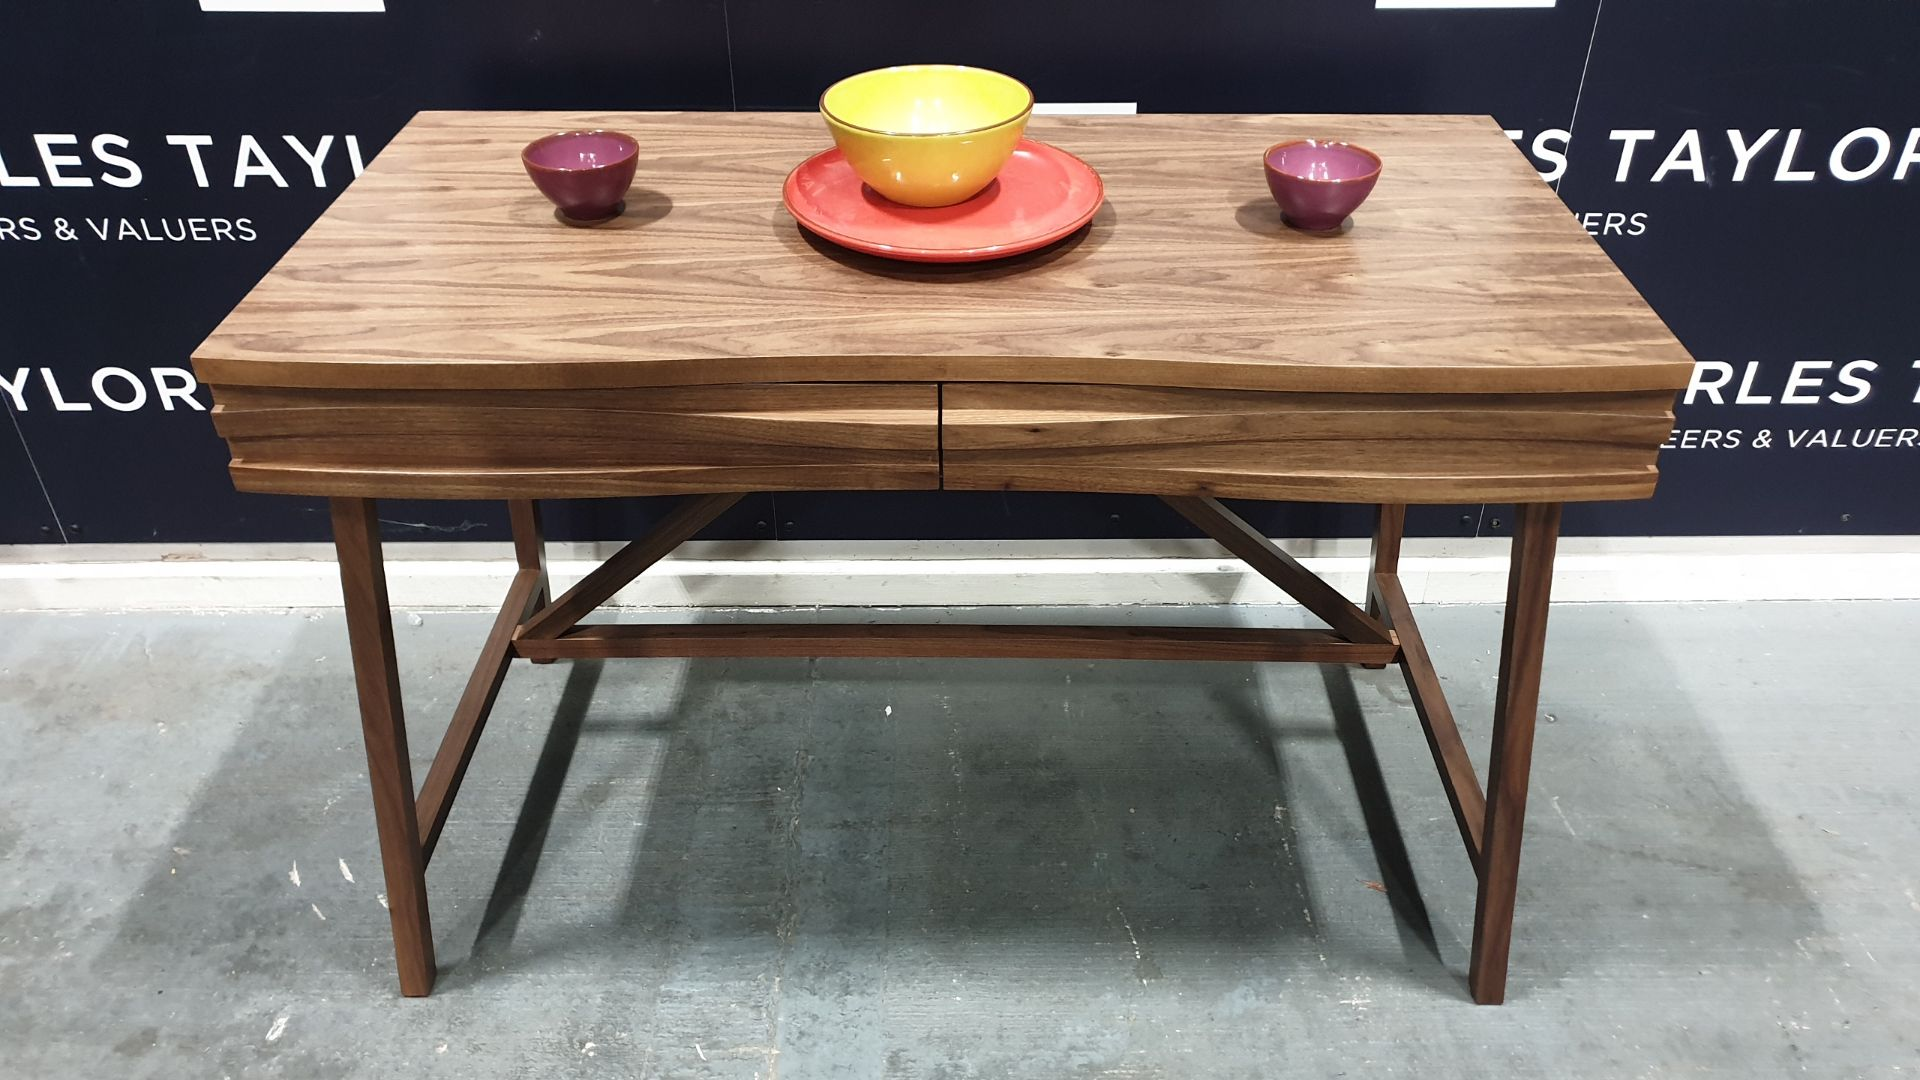 Lot 1083 - BRAND NEW CONTENT BY TERENCE CONRAN WOODEN 2 DRAWER WAVE DESK IN WALNUT. - 60 X 120 X 78CM £795.00